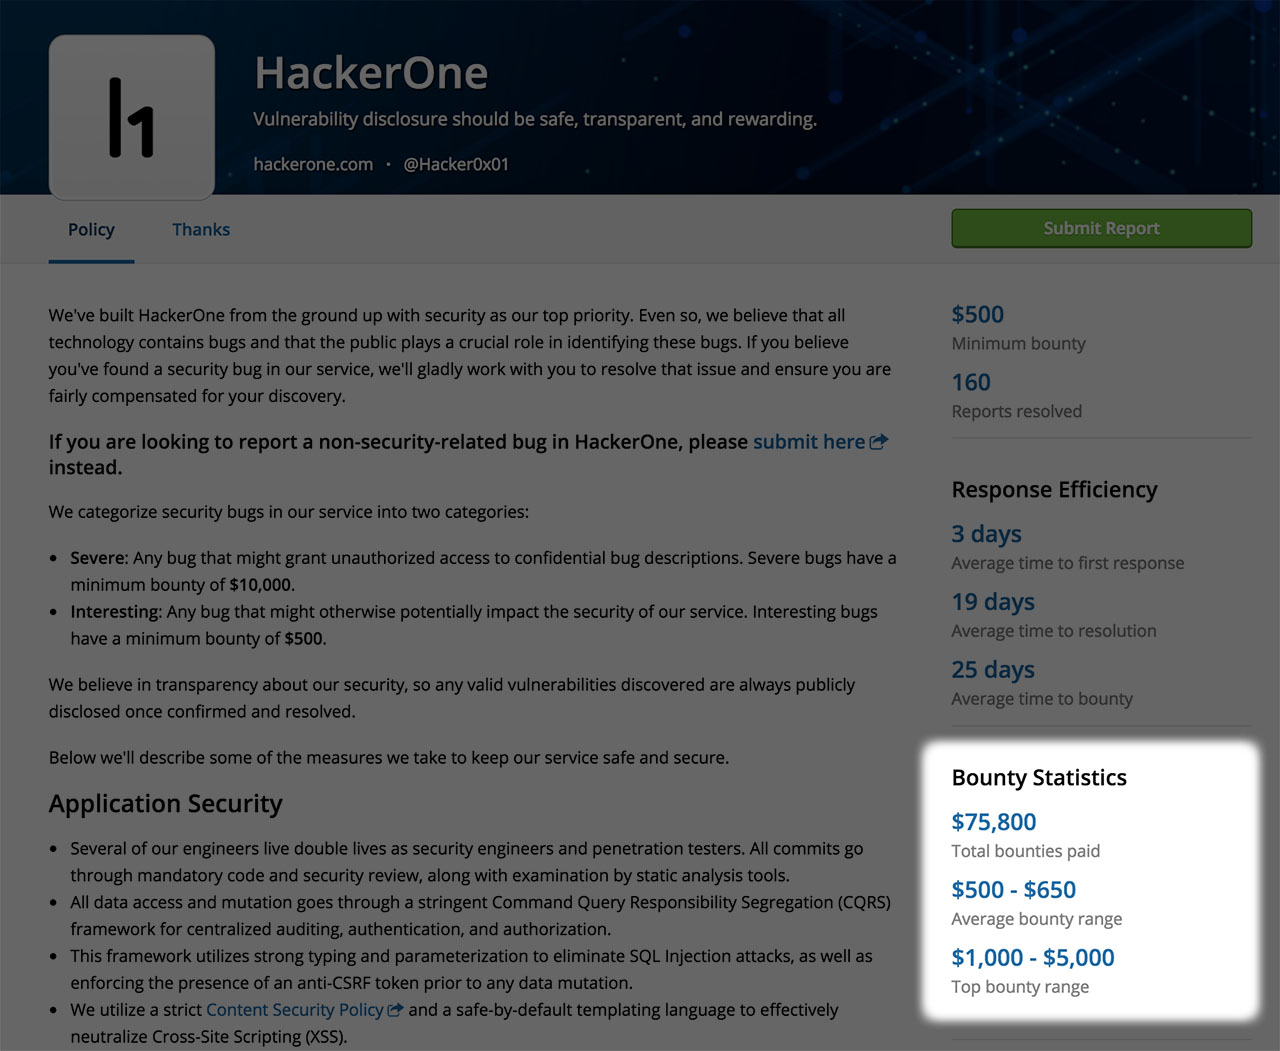 HackerOne program bounty statistics